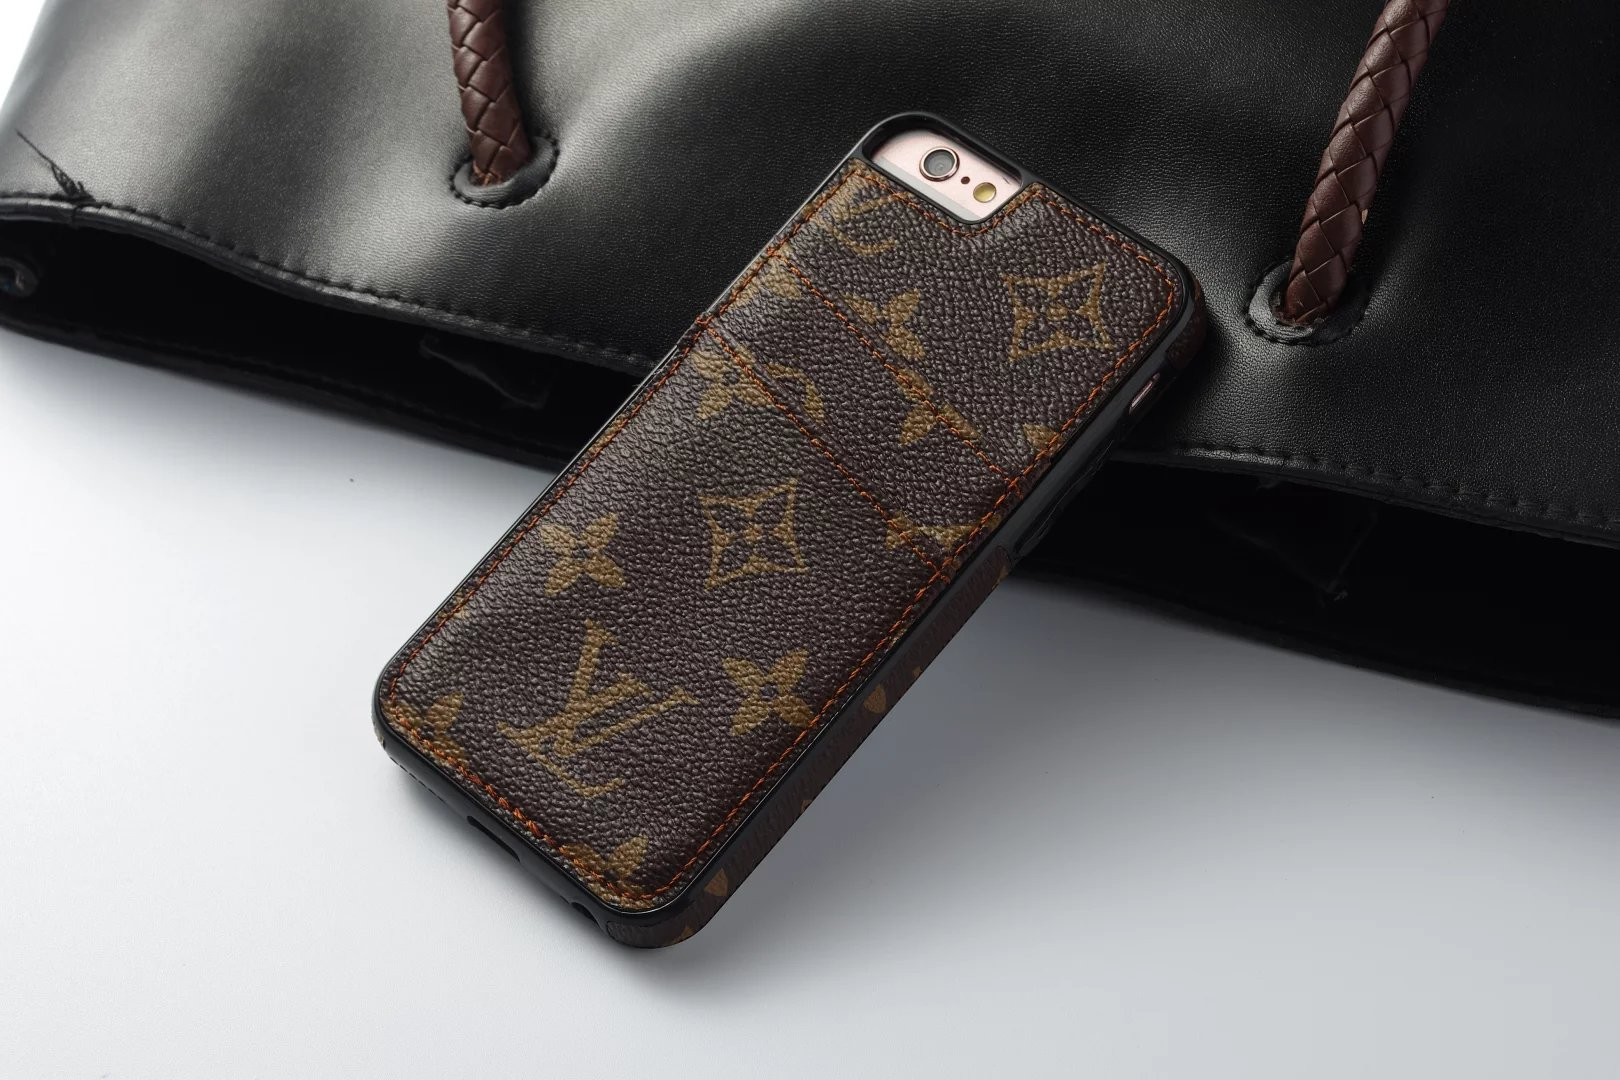 iphone hülle selber machen iphone hülle kaufen Louis Vuitton iphone 8 Plus hüllen iphone 8 Plus drei apple iphone 8 Plus preisvergleich iphone 8 Plus flip tasche iphone 8 Plus leder iphone hülle 8 Pluslber gestalten günstig iphone 8 Plus cover leder